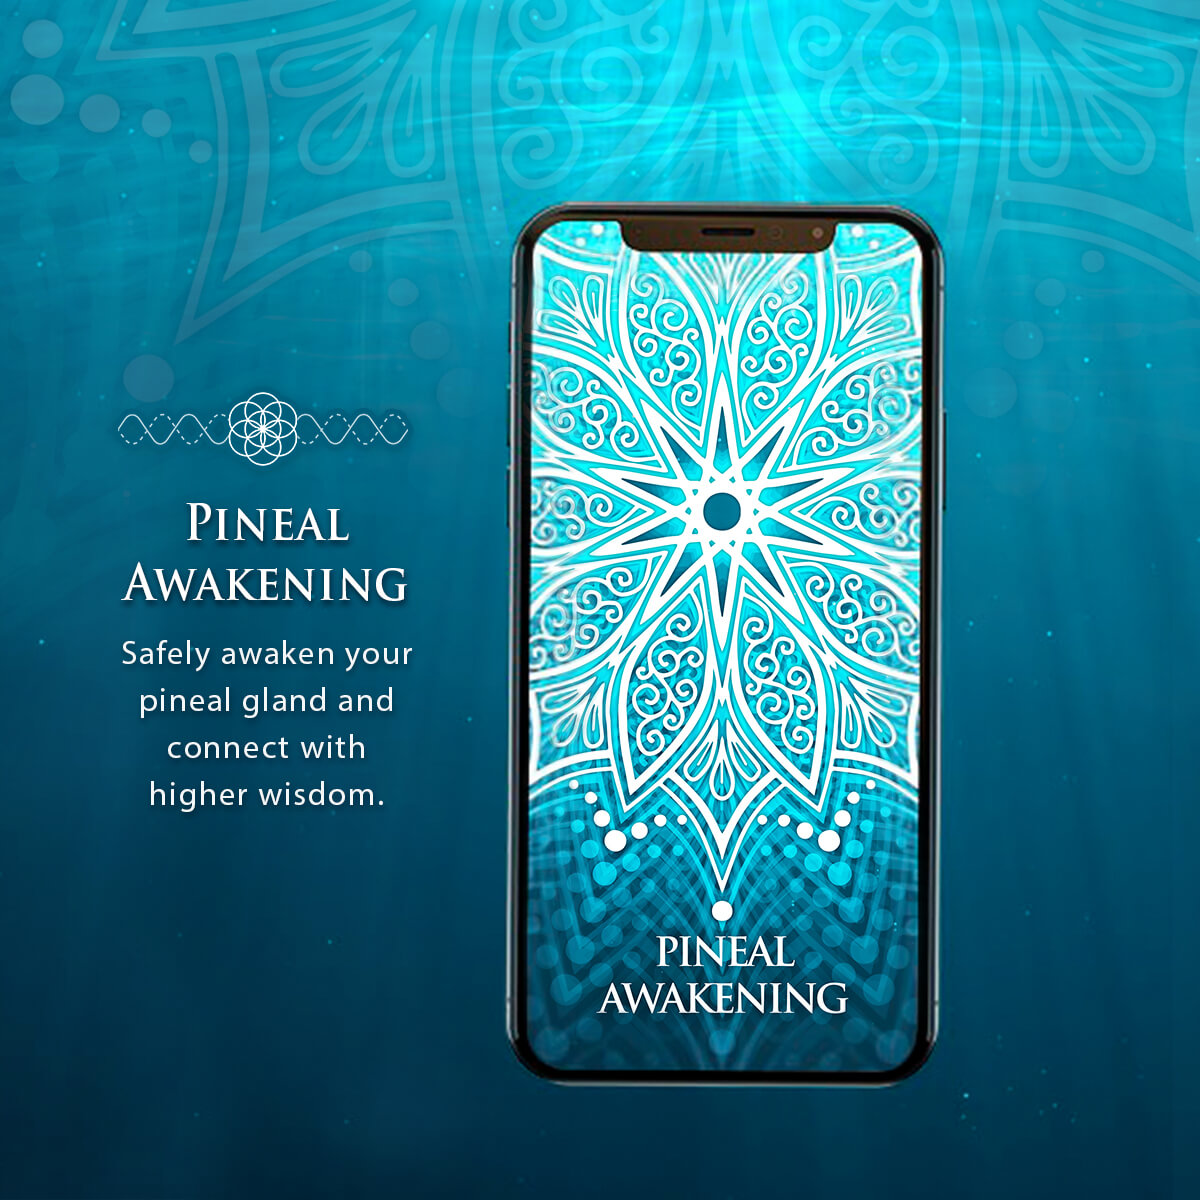 Safely awaken your pineal gland and connect with higher wisdom. This biofield entrainment is designed to energetically awaken your pineal gland and third eye as well as open the pineal gland to the highest available source of knowledge.